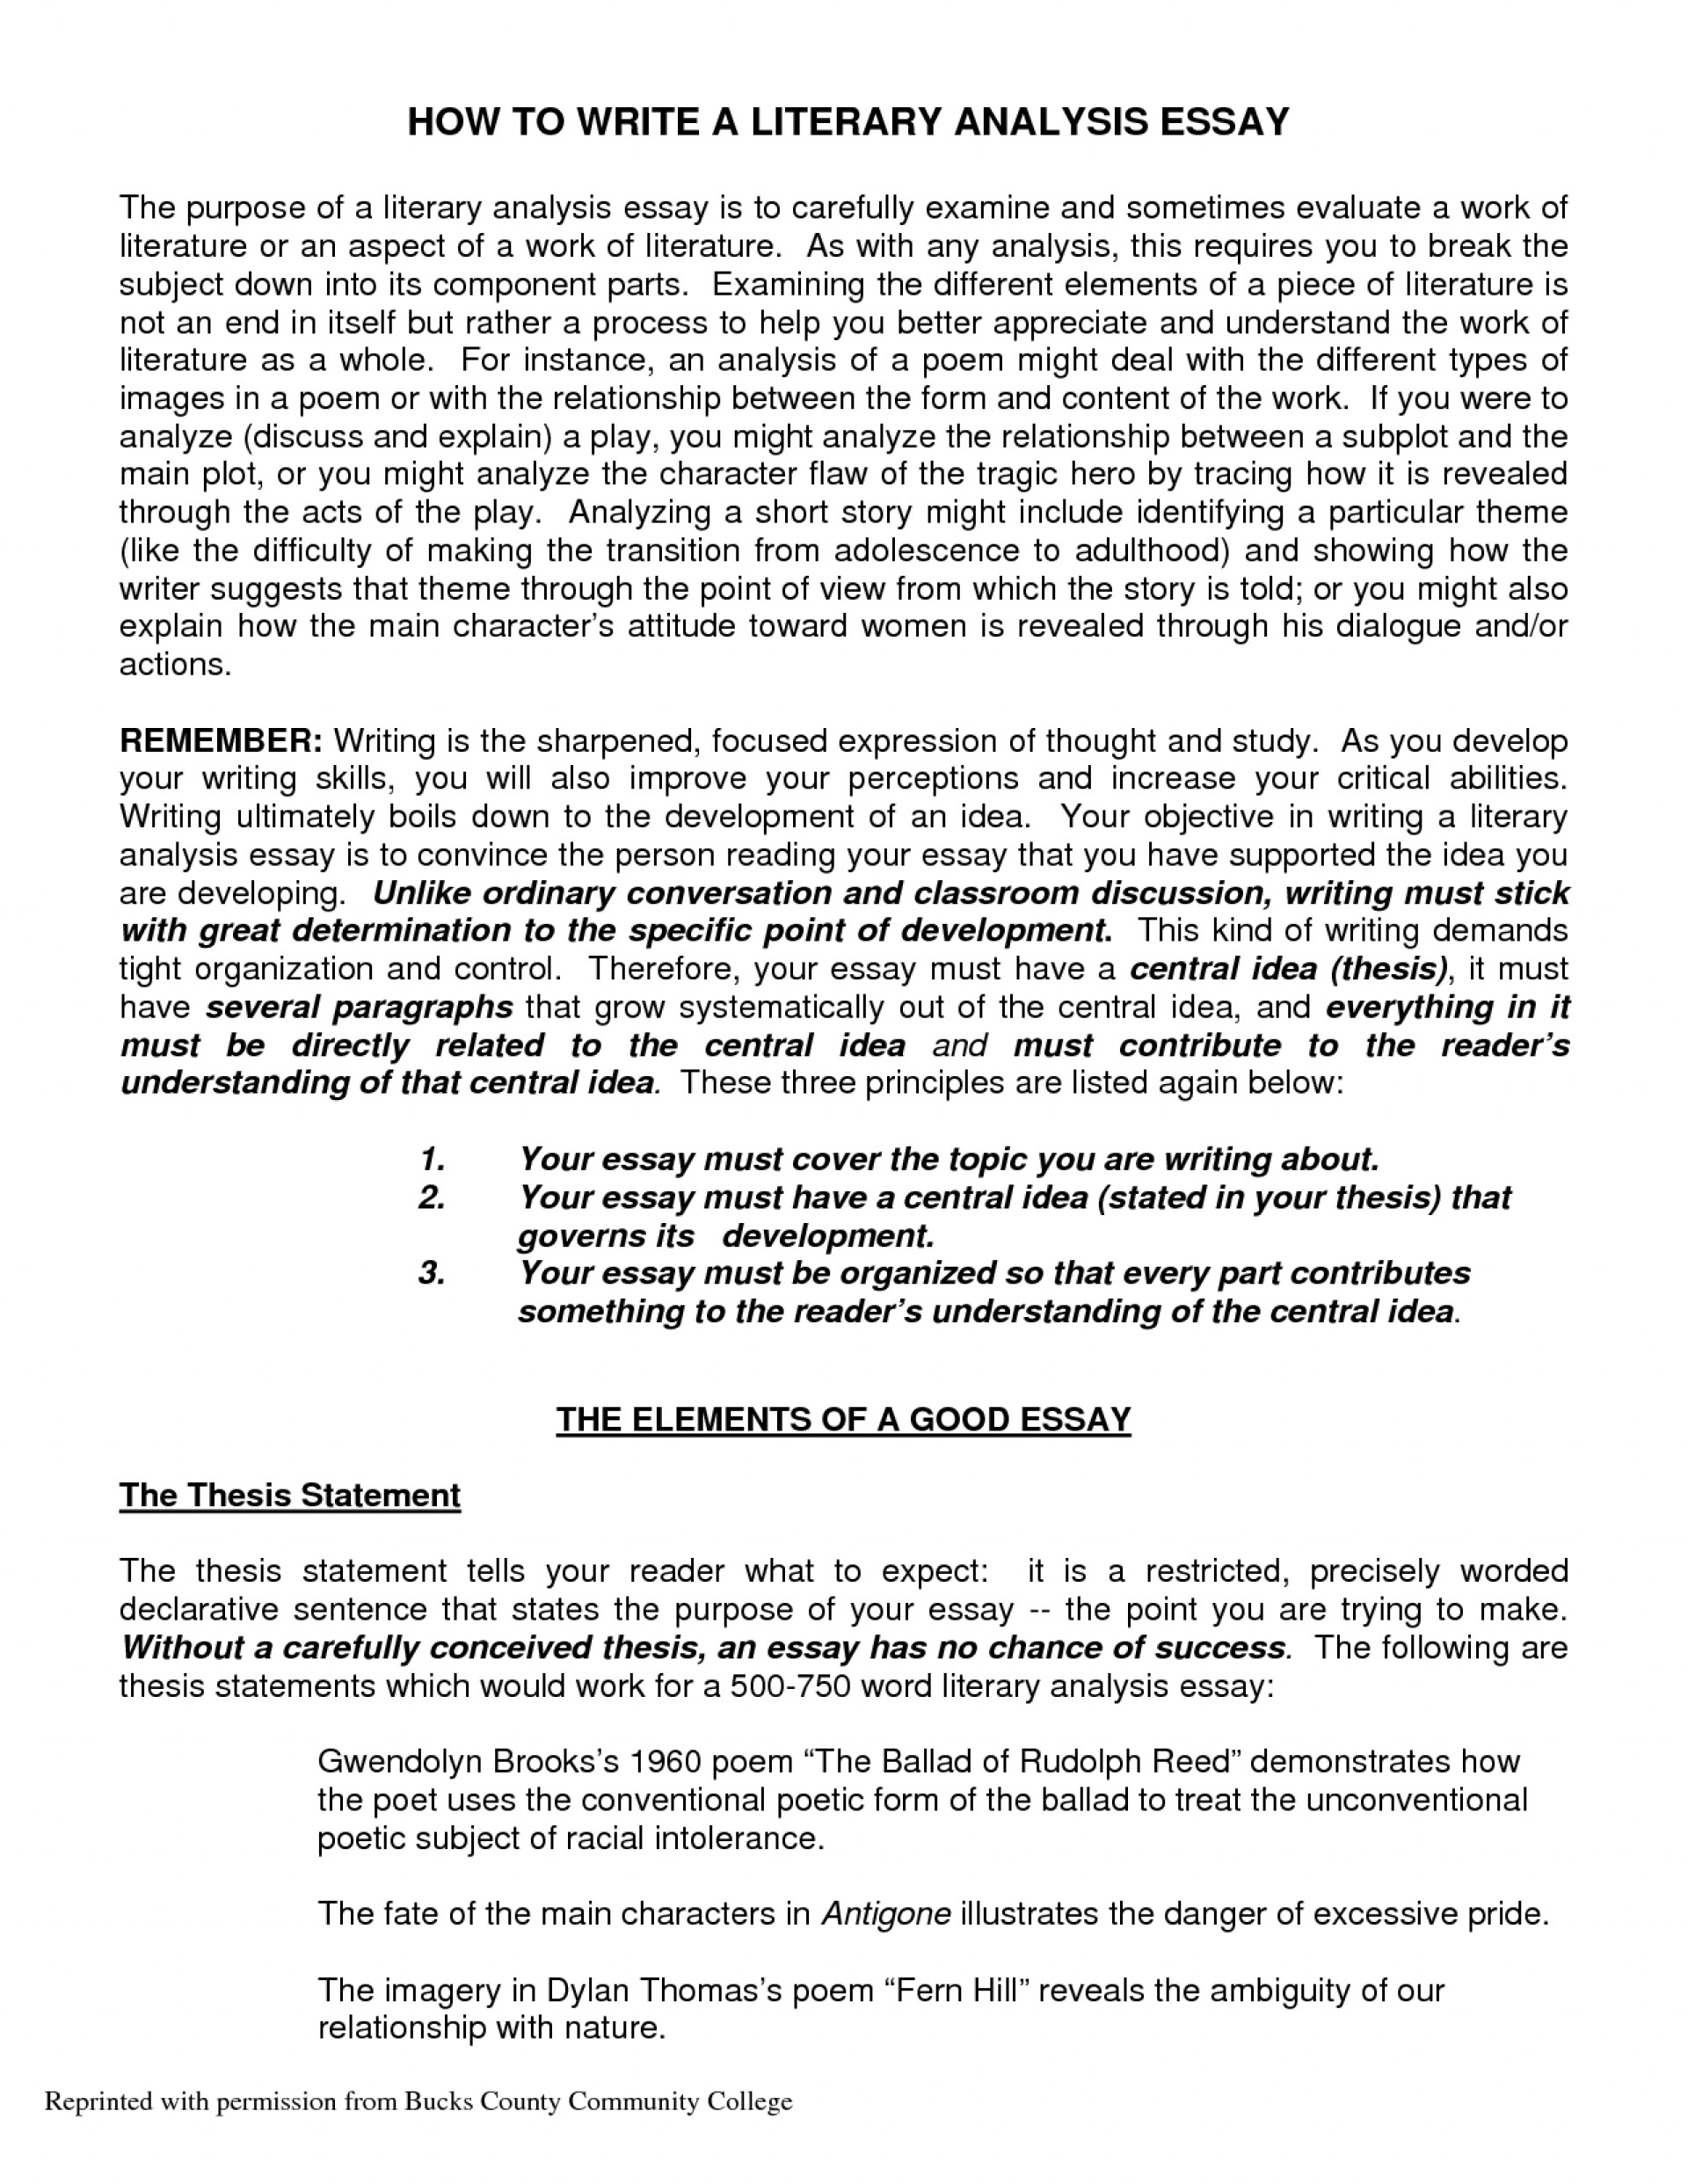 003 Awesome Collection Of Ideas Example Literary Essaylso Format Sample Huanyii Fancy Critical How To Write Formidable A Essay Literature Conclusion Step By Ppt Good English Introduction 1920